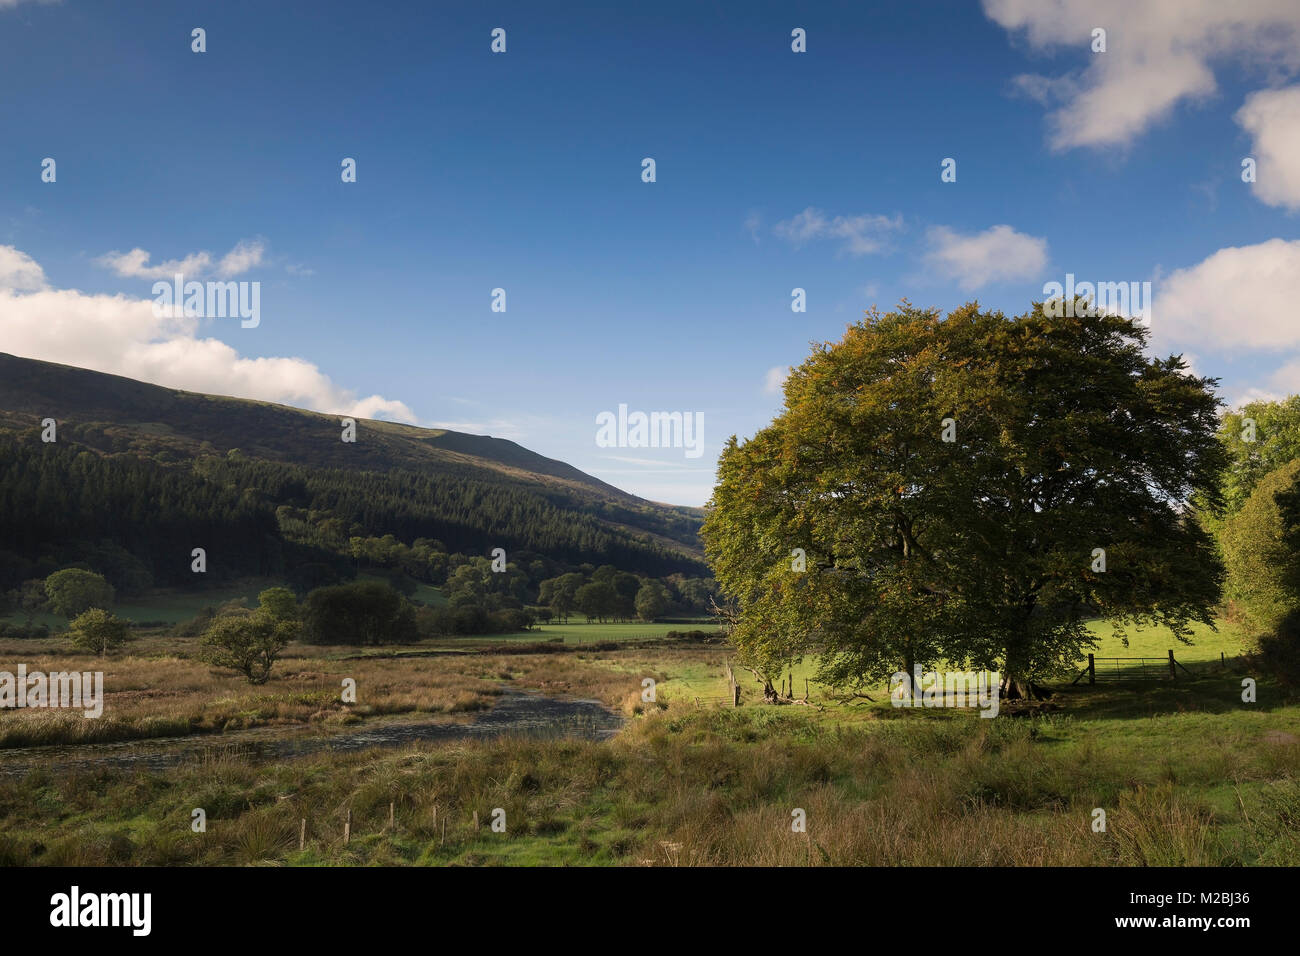 An image of a beautiful Welsh Valley situated at the edge of Talybont Reservoir, Powys, Wales, UK - Stock Image